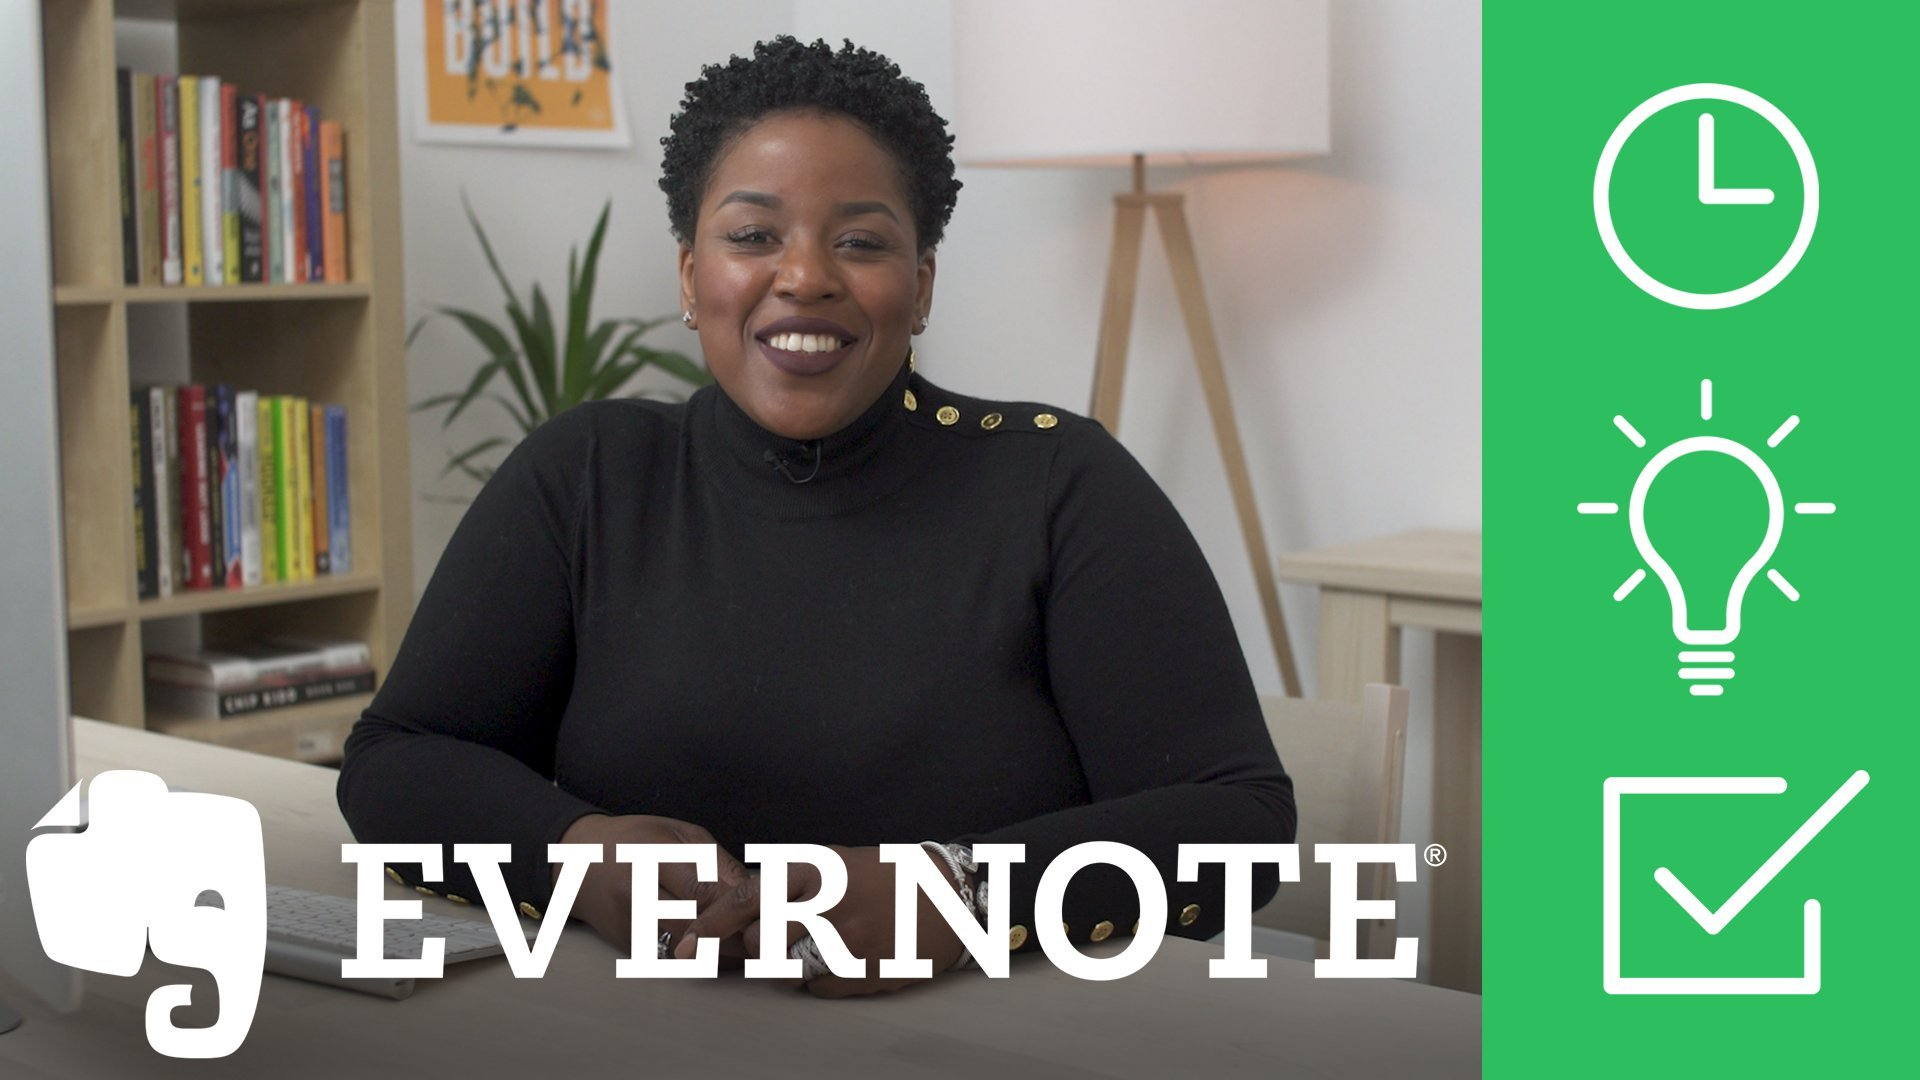 Productivity with Evernote: Use One Tool for Everything